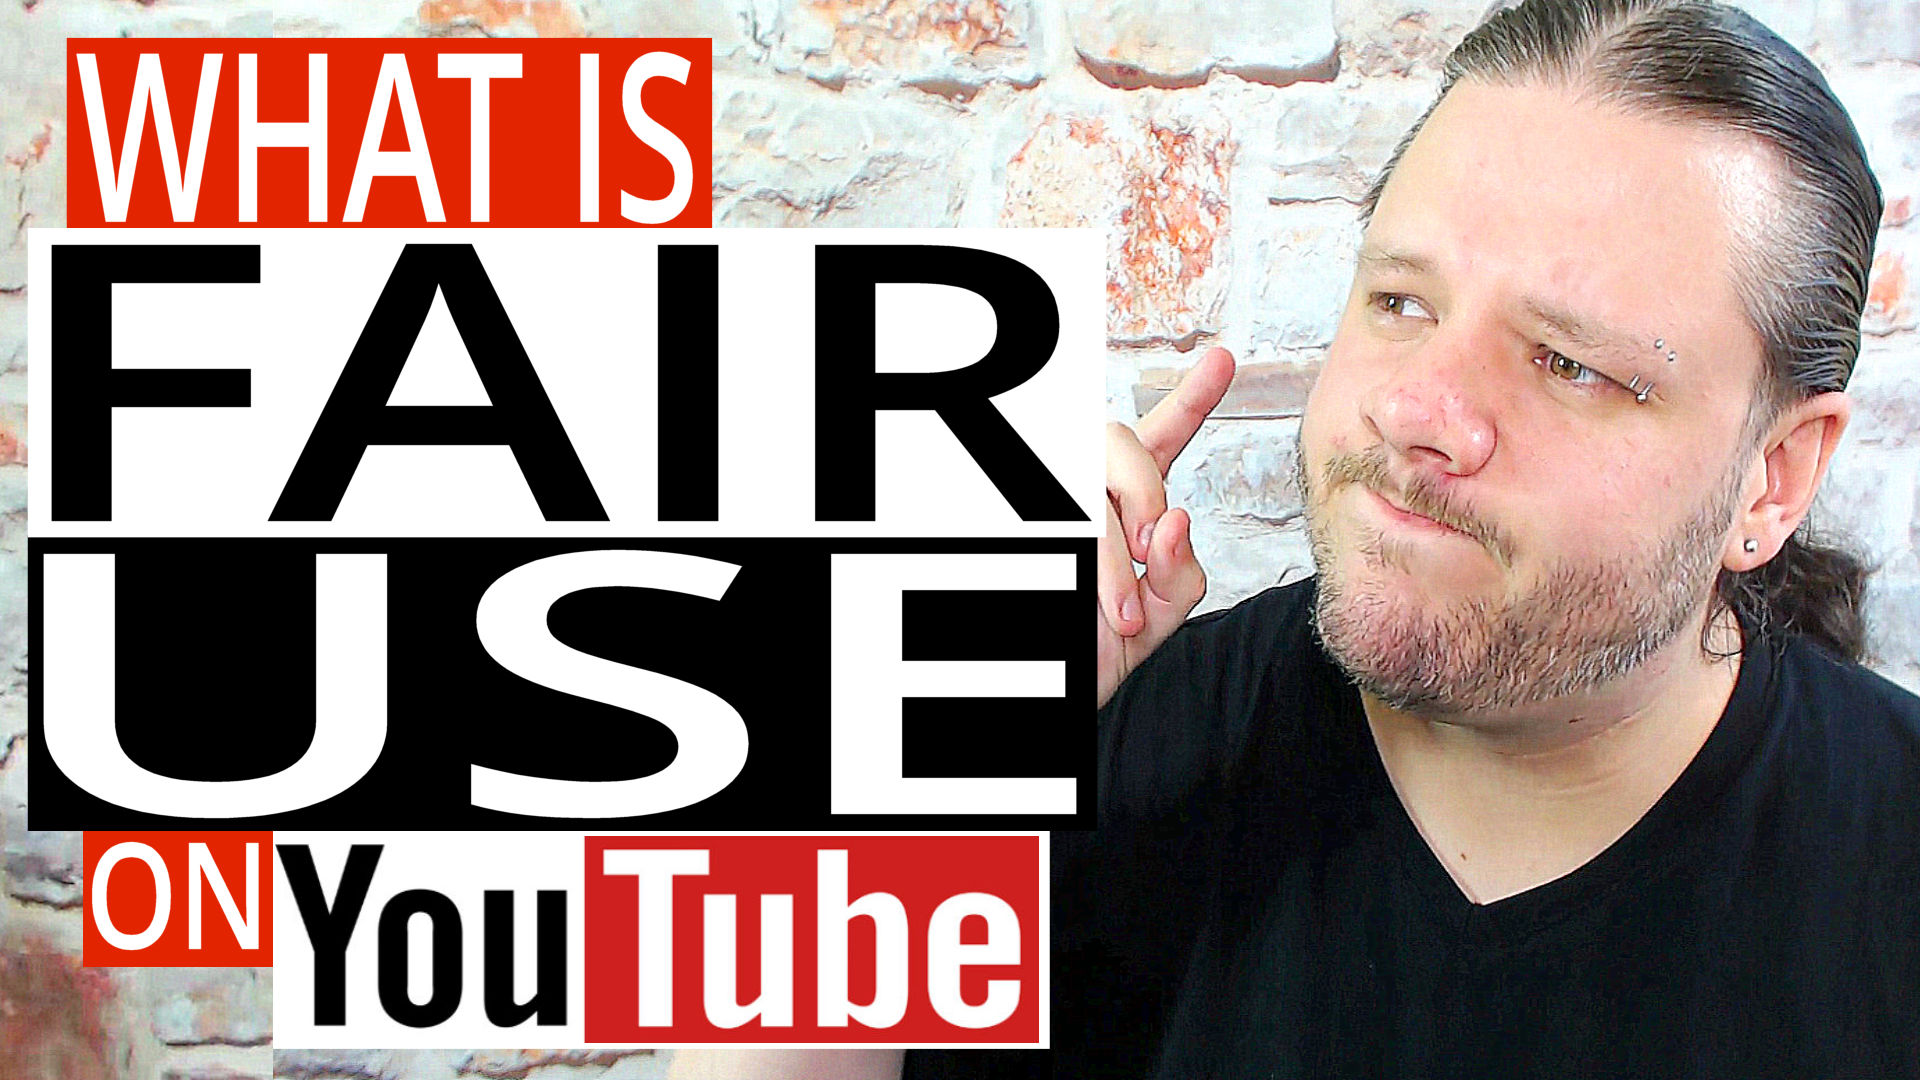 alan spicer,alanspicer,youtube tips,youtube tricks,asyt,youtube tips 2018,What Is Fair Use On YouTube,fair use,youtube,copyright,what is the fair use policy on youtube,fair use on youtube,fair use copyright,youtube fair use,youtube fair use policy,youtube fair use copyright video,fair use explained,fair use examples,fair use on youtube explained,copyright fair use,copyright fair use youtube,law,fair use law explained,Copyright Fair Use For Dummies,wtfu